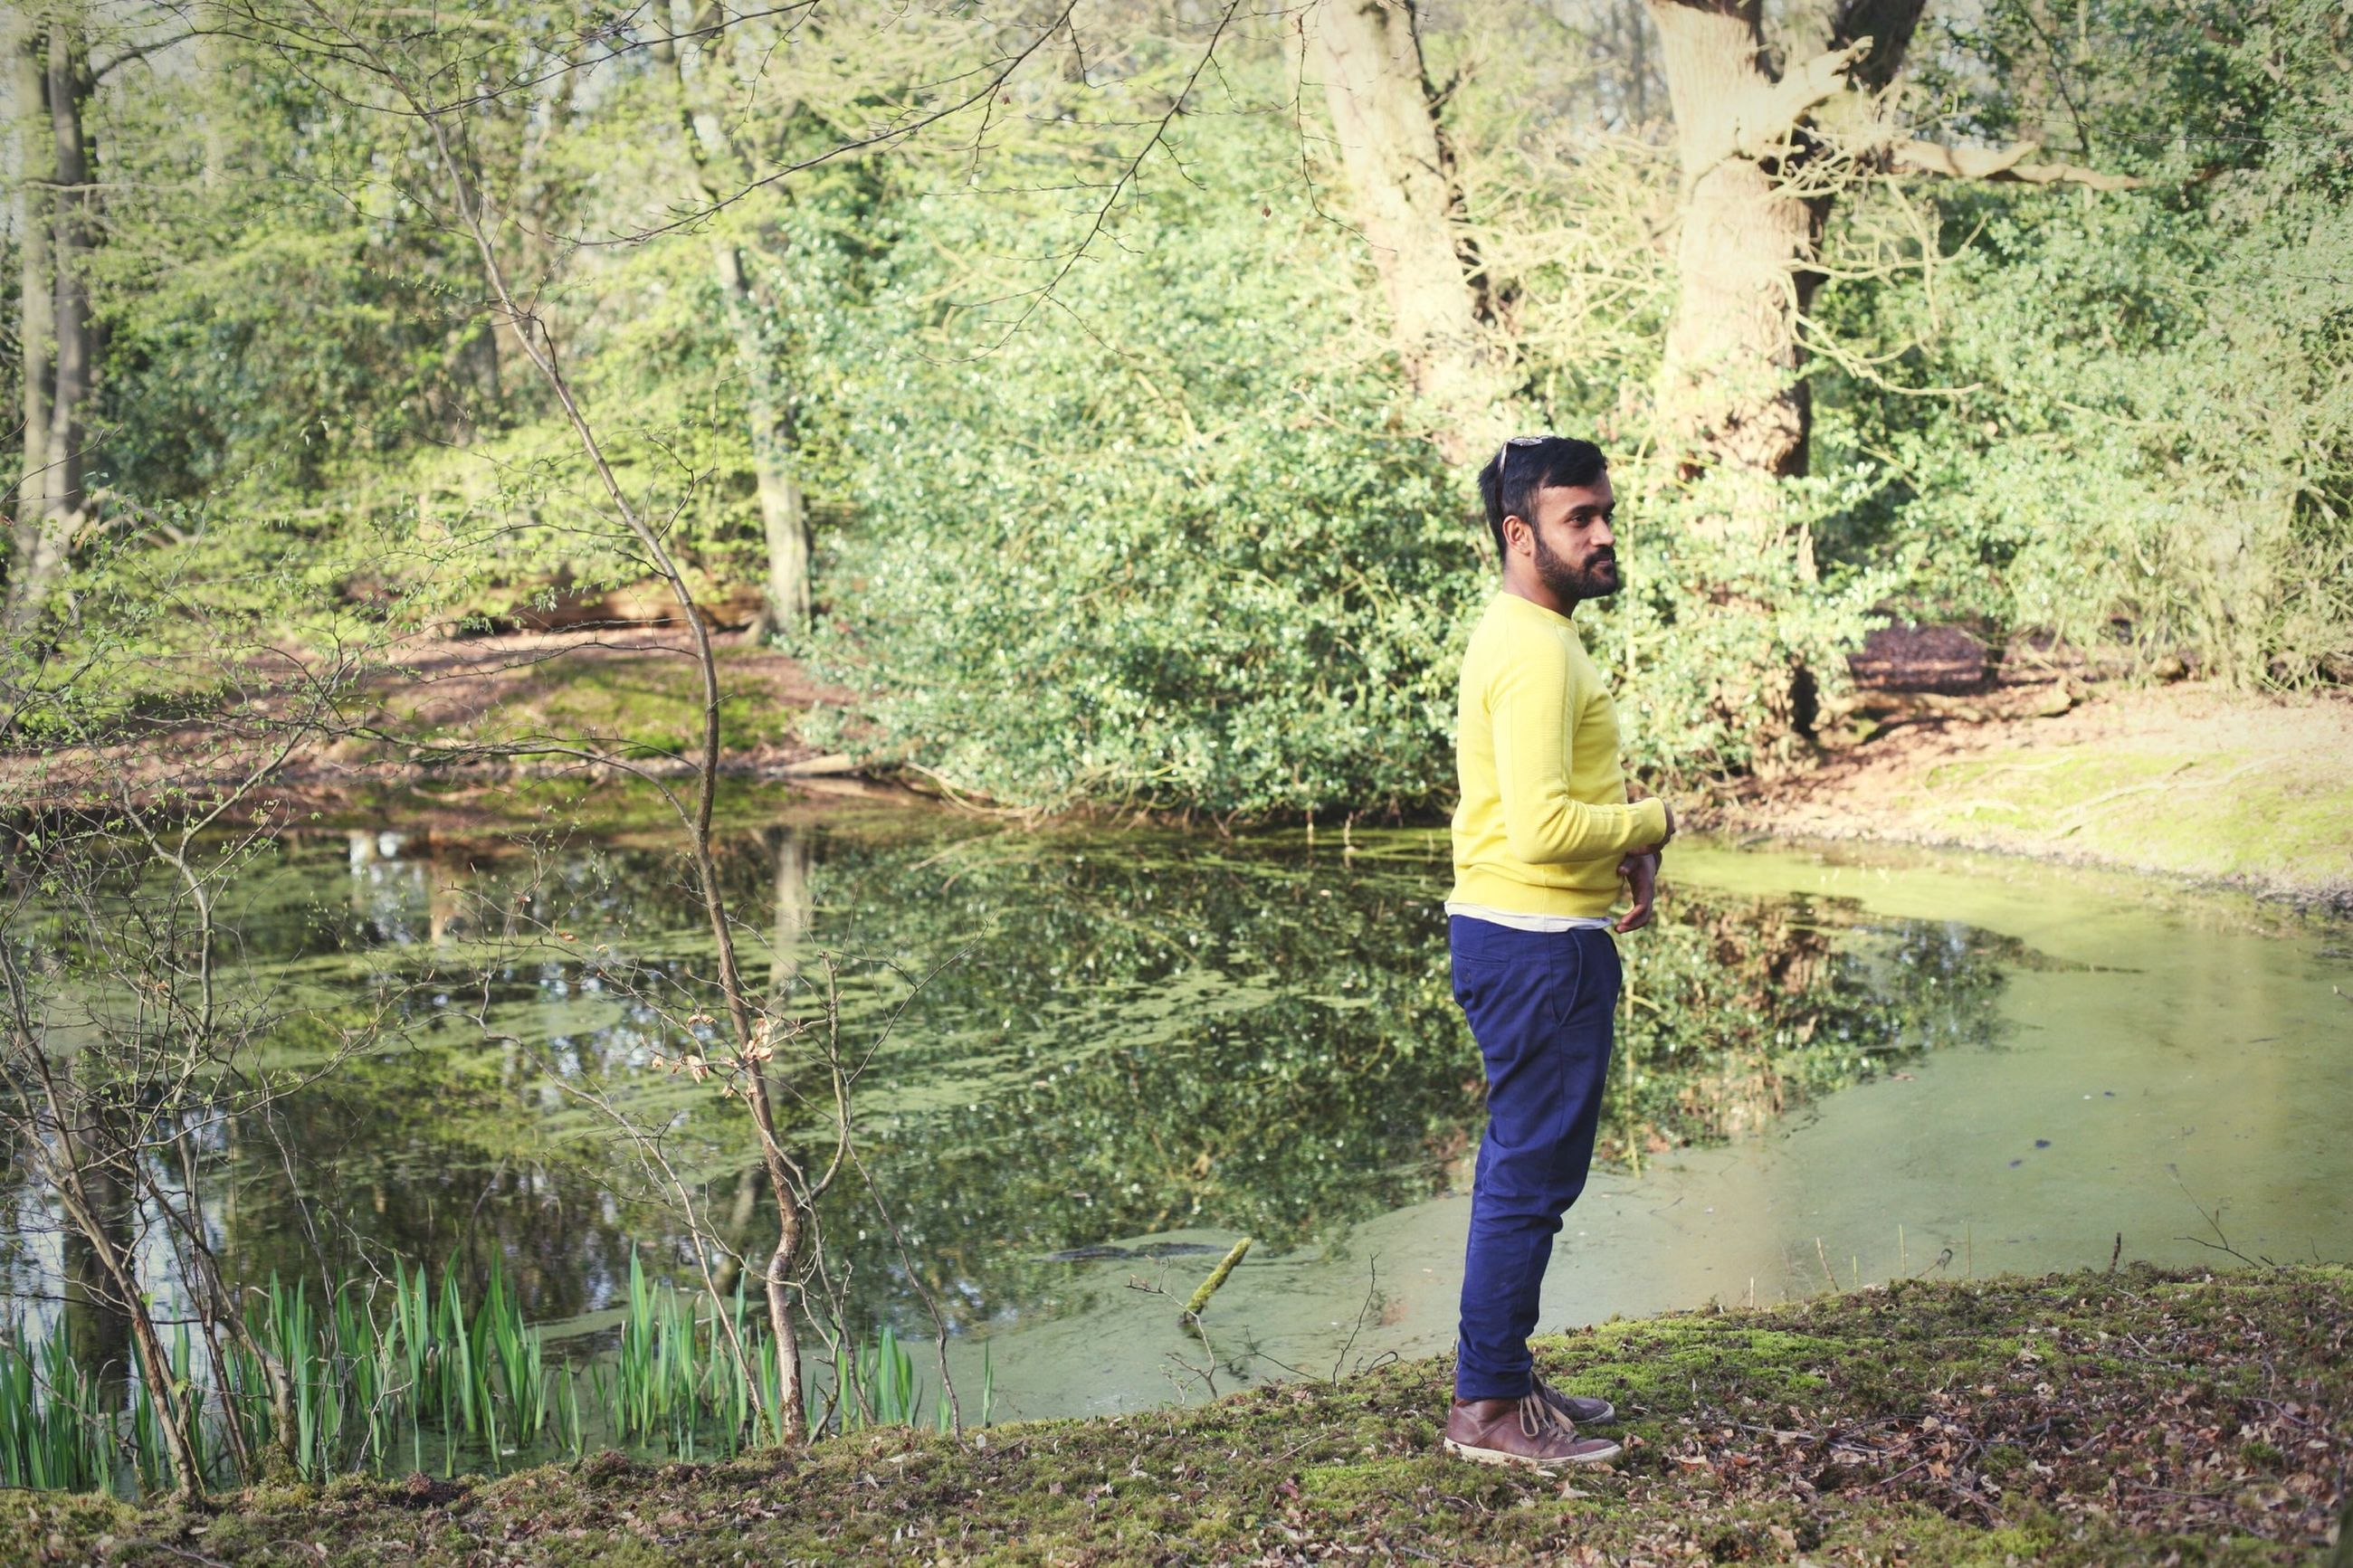 tree, forest, standing, lifestyles, full length, casual clothing, leisure activity, growth, young adult, tree trunk, person, nature, water, plant, tranquility, day, outdoors, three quarter length